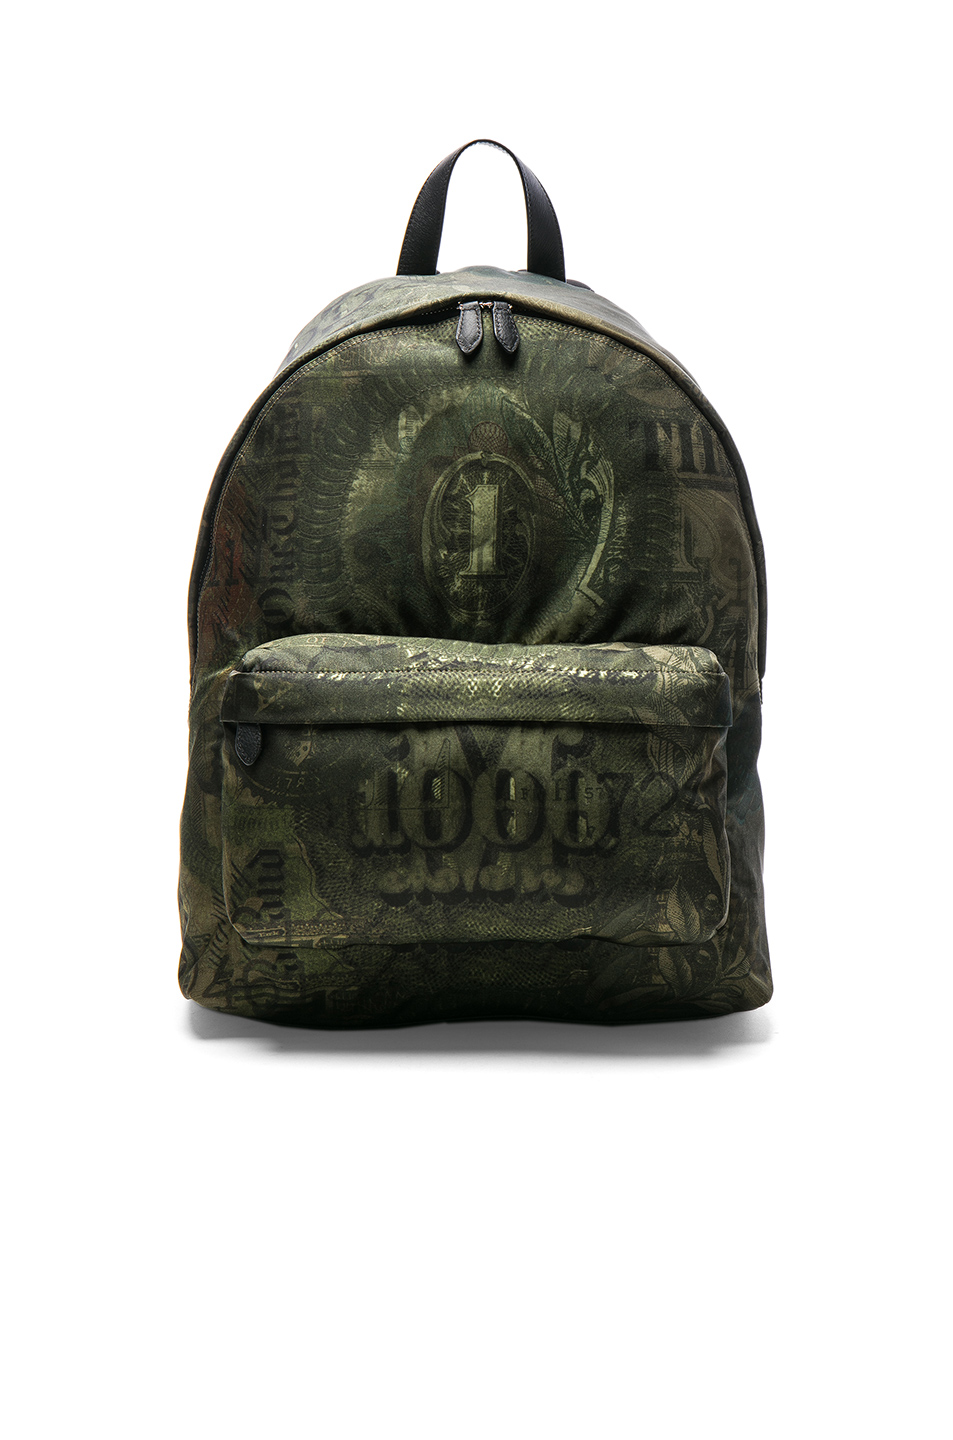 Givenchy Printed Backpack in Gree,Abstract